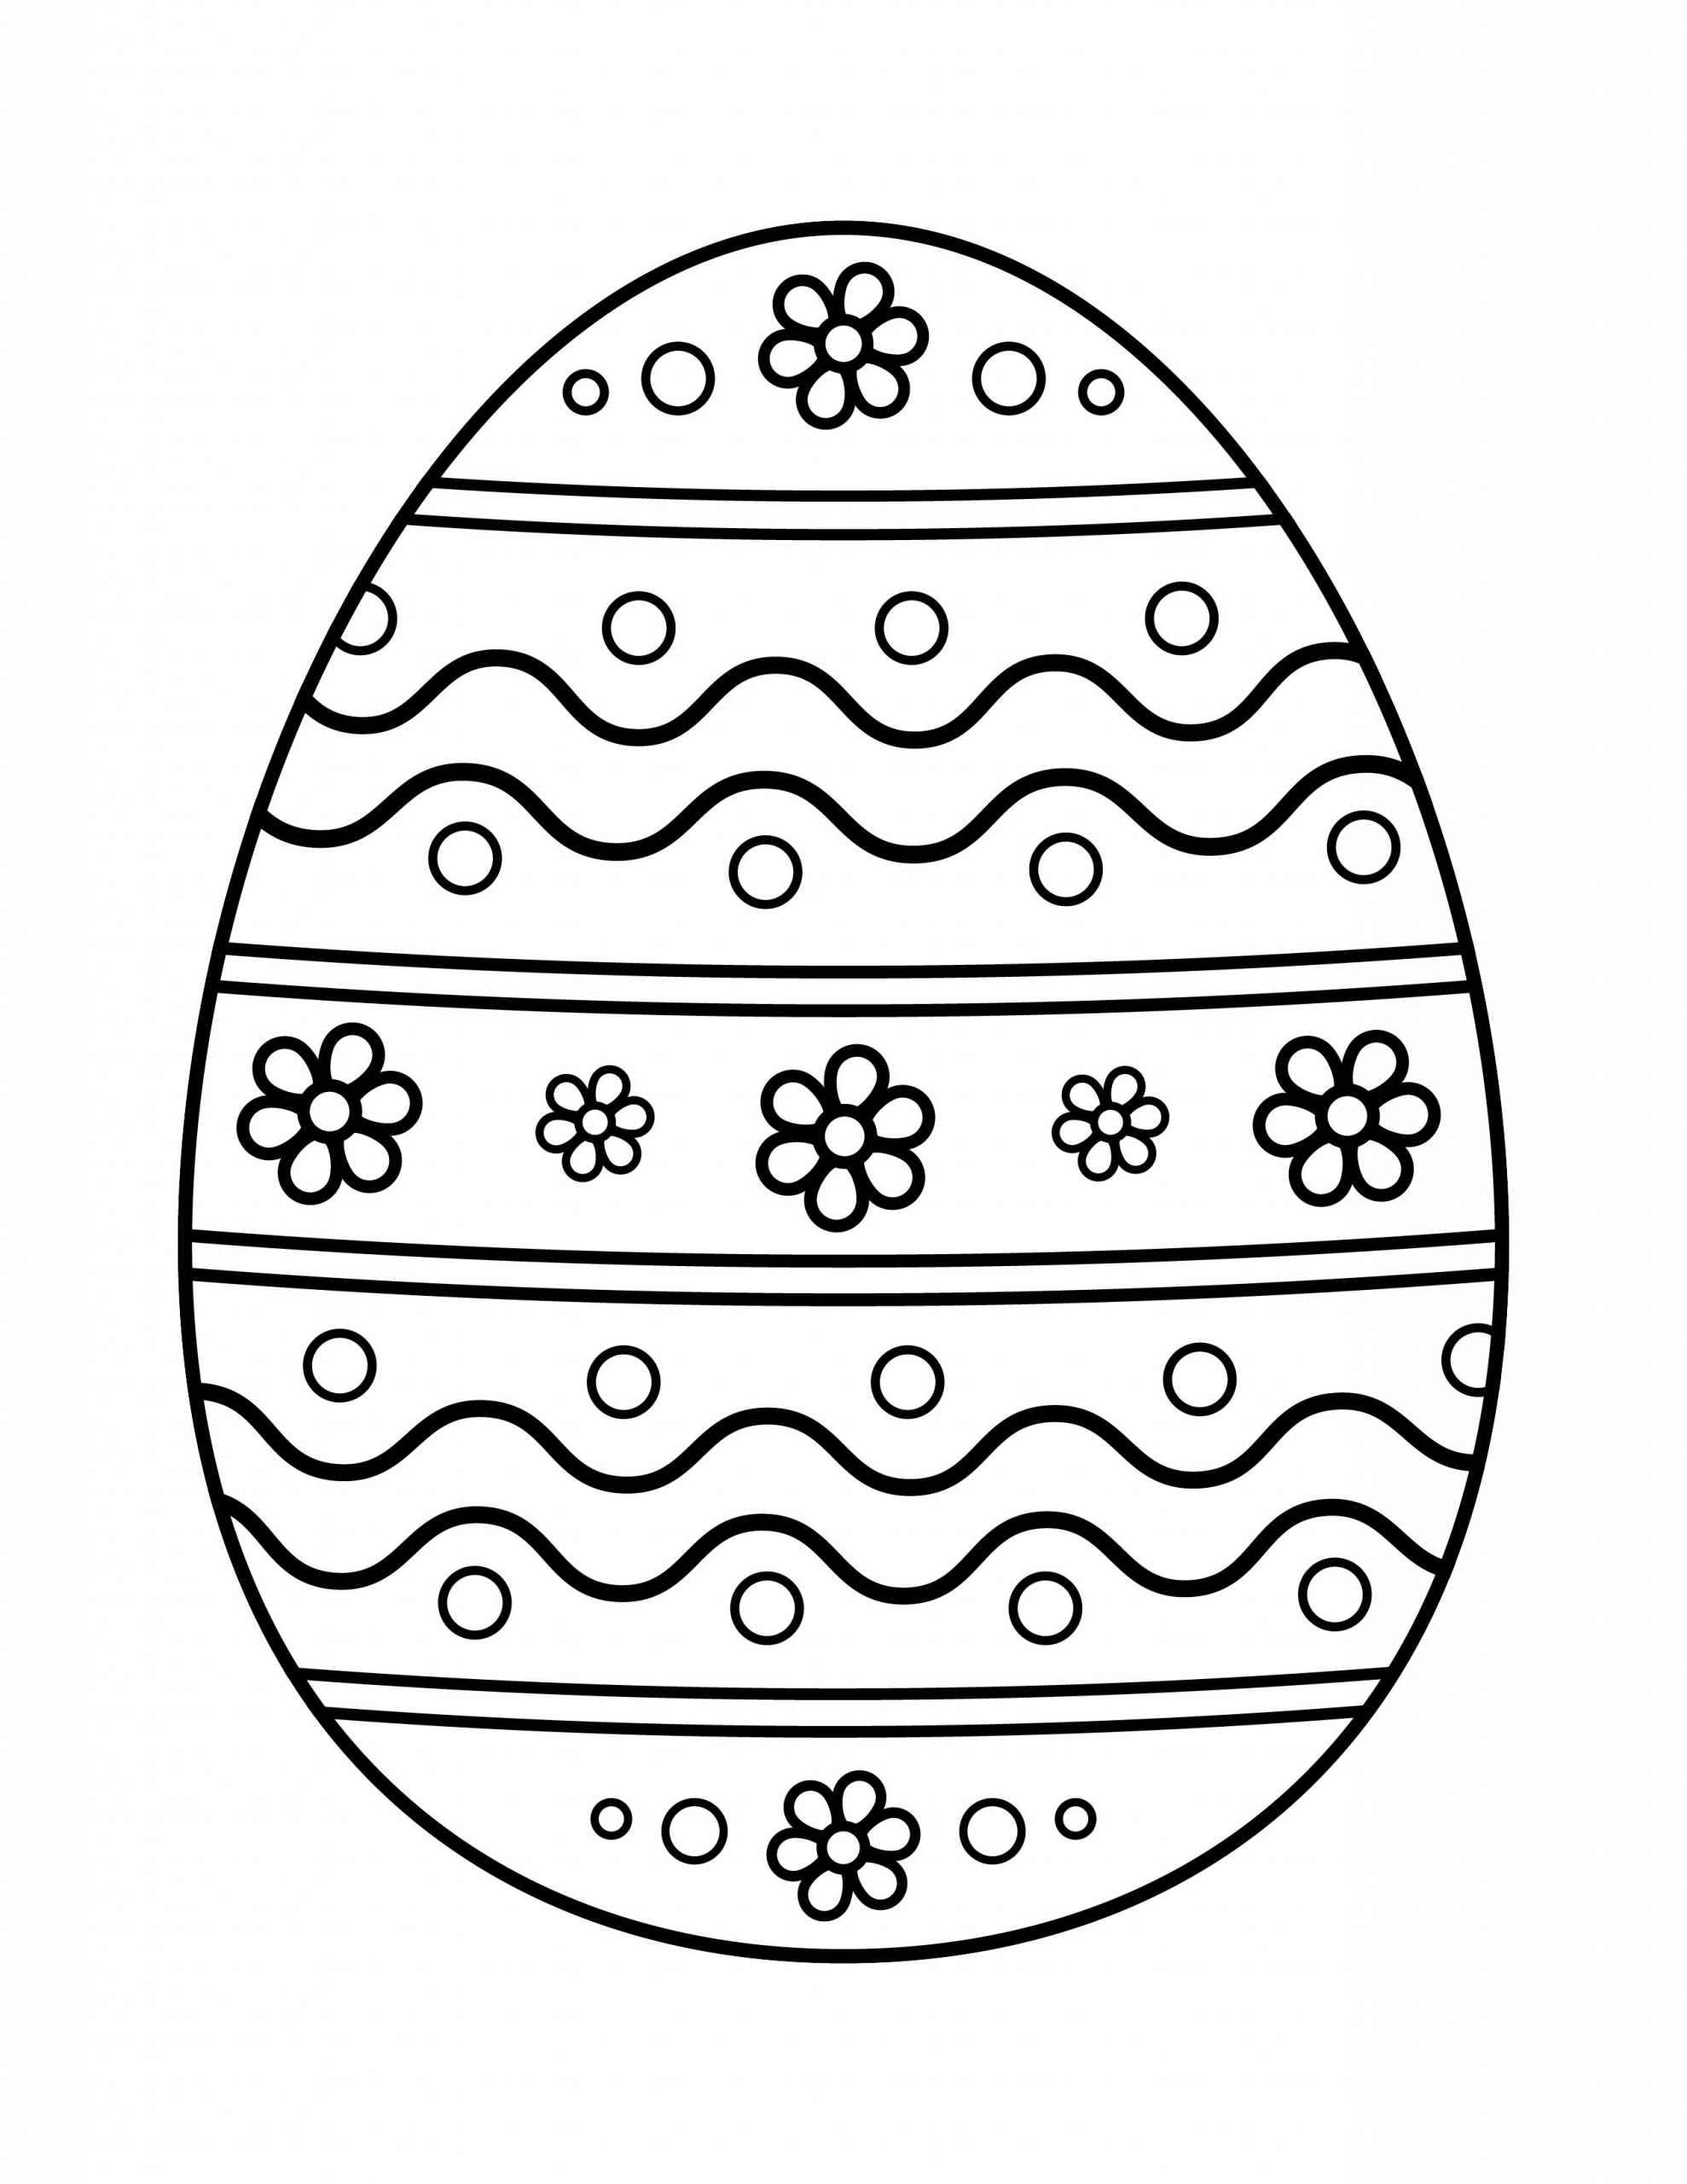 easter eggs coloring page simple easter egg coloring page creative ads and more easter page eggs coloring